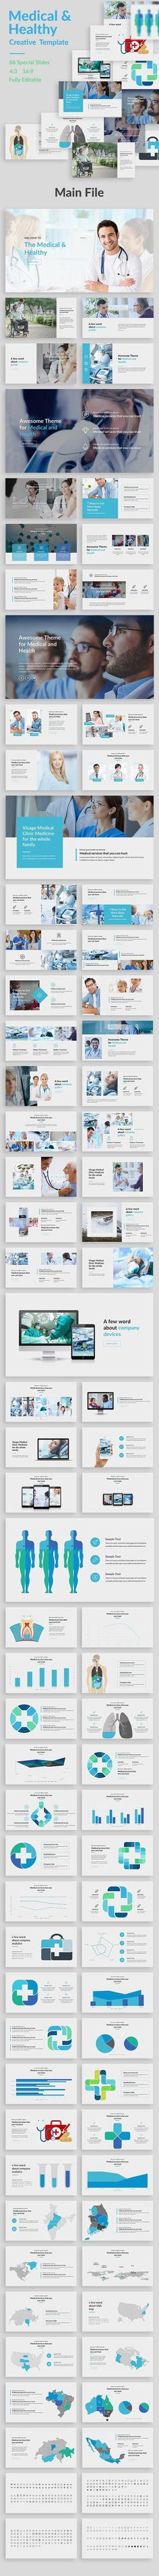 Party building ppt template background ppt ppt government work party building ppt template background ppt ppt government work report summary httpsucaifengbaopptzhengf free ppt templates download toneelgroepblik Choice Image